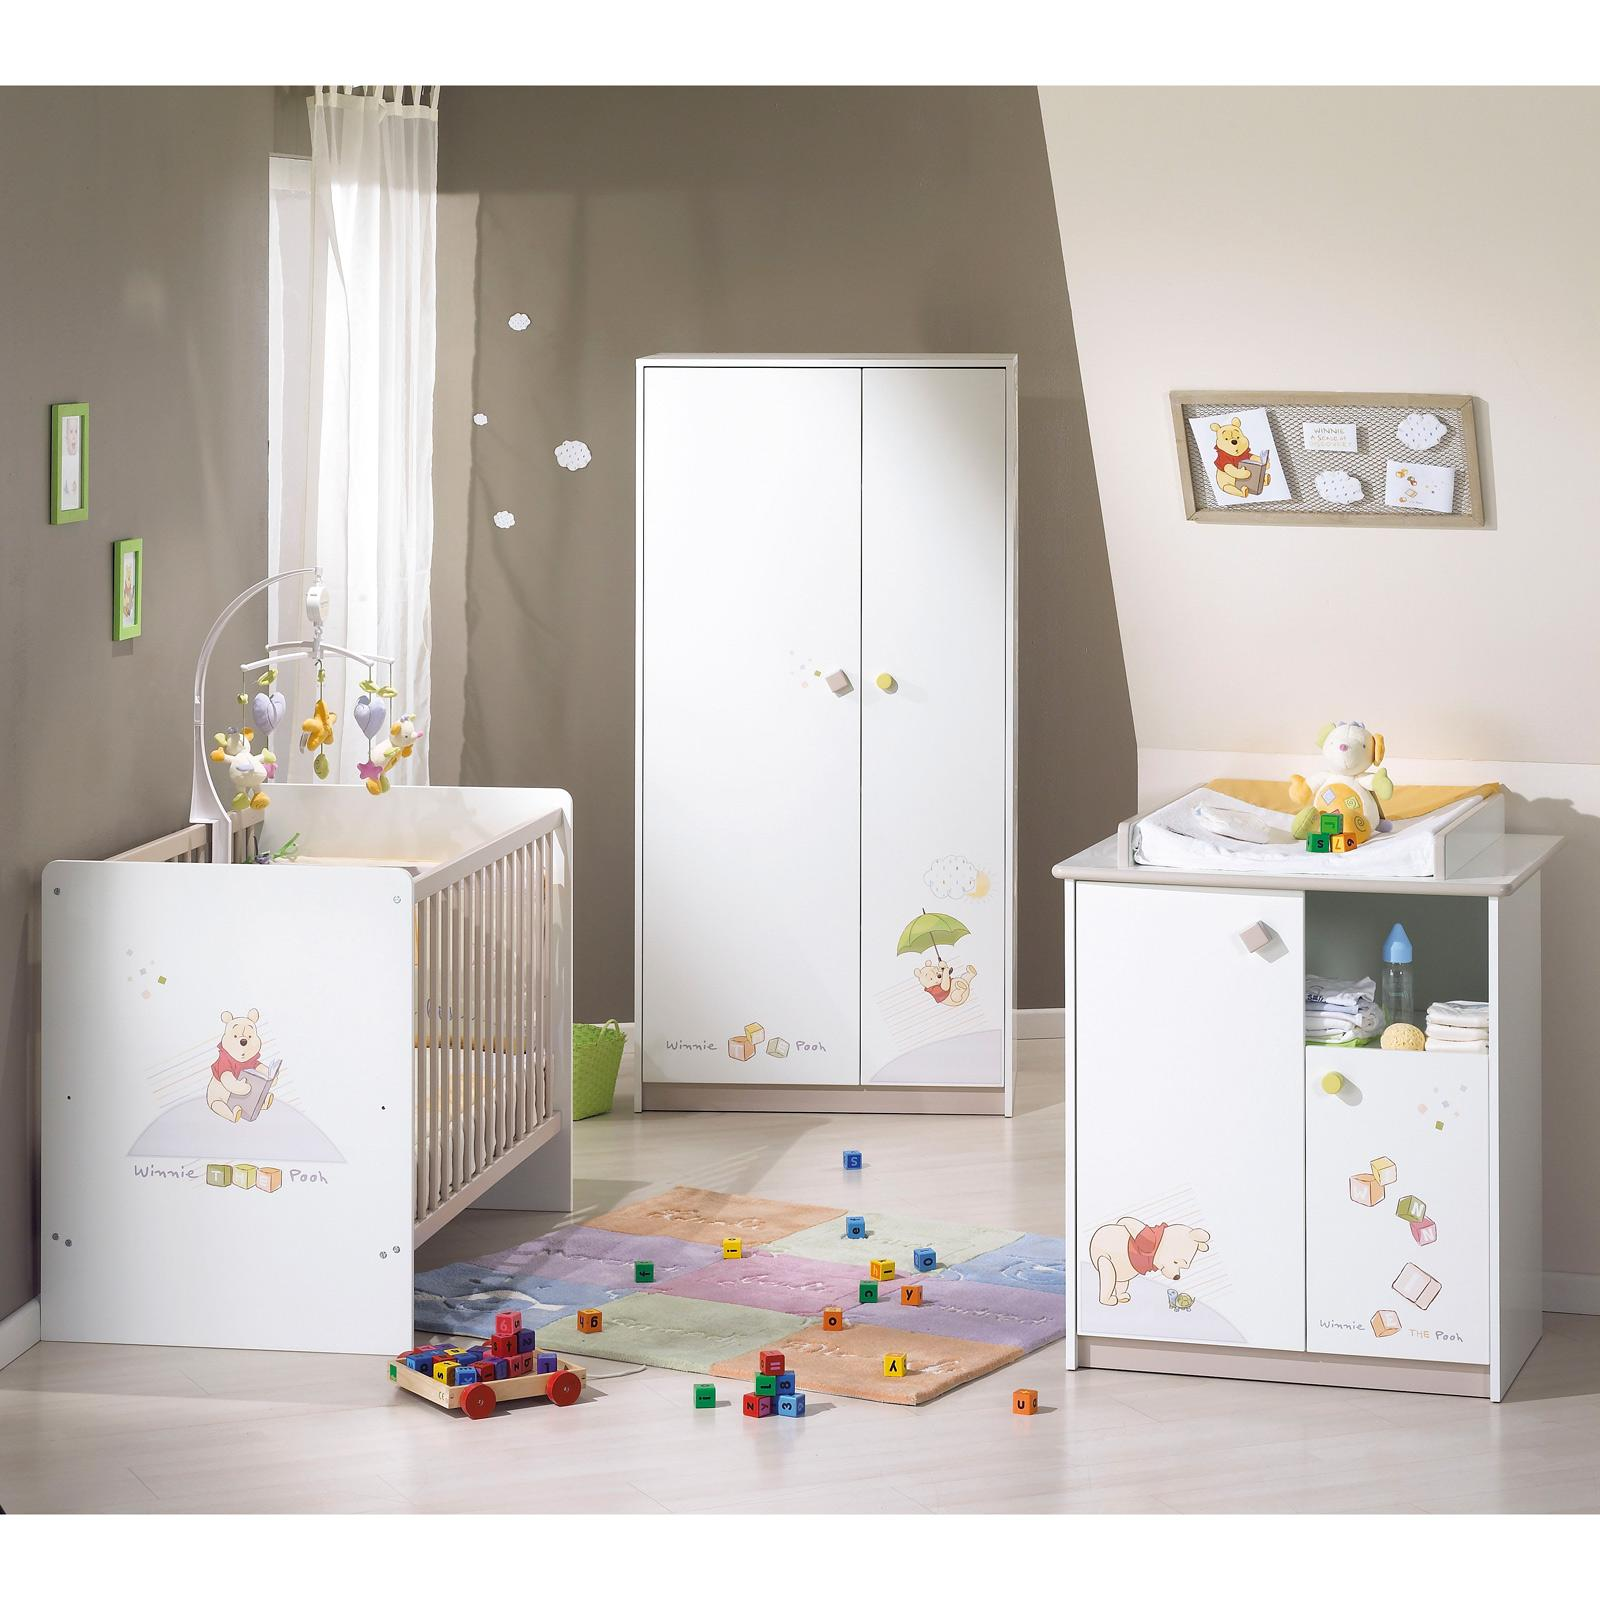 Decoration chambre winnie l ourson pas cher for Chambre complete enfant fille